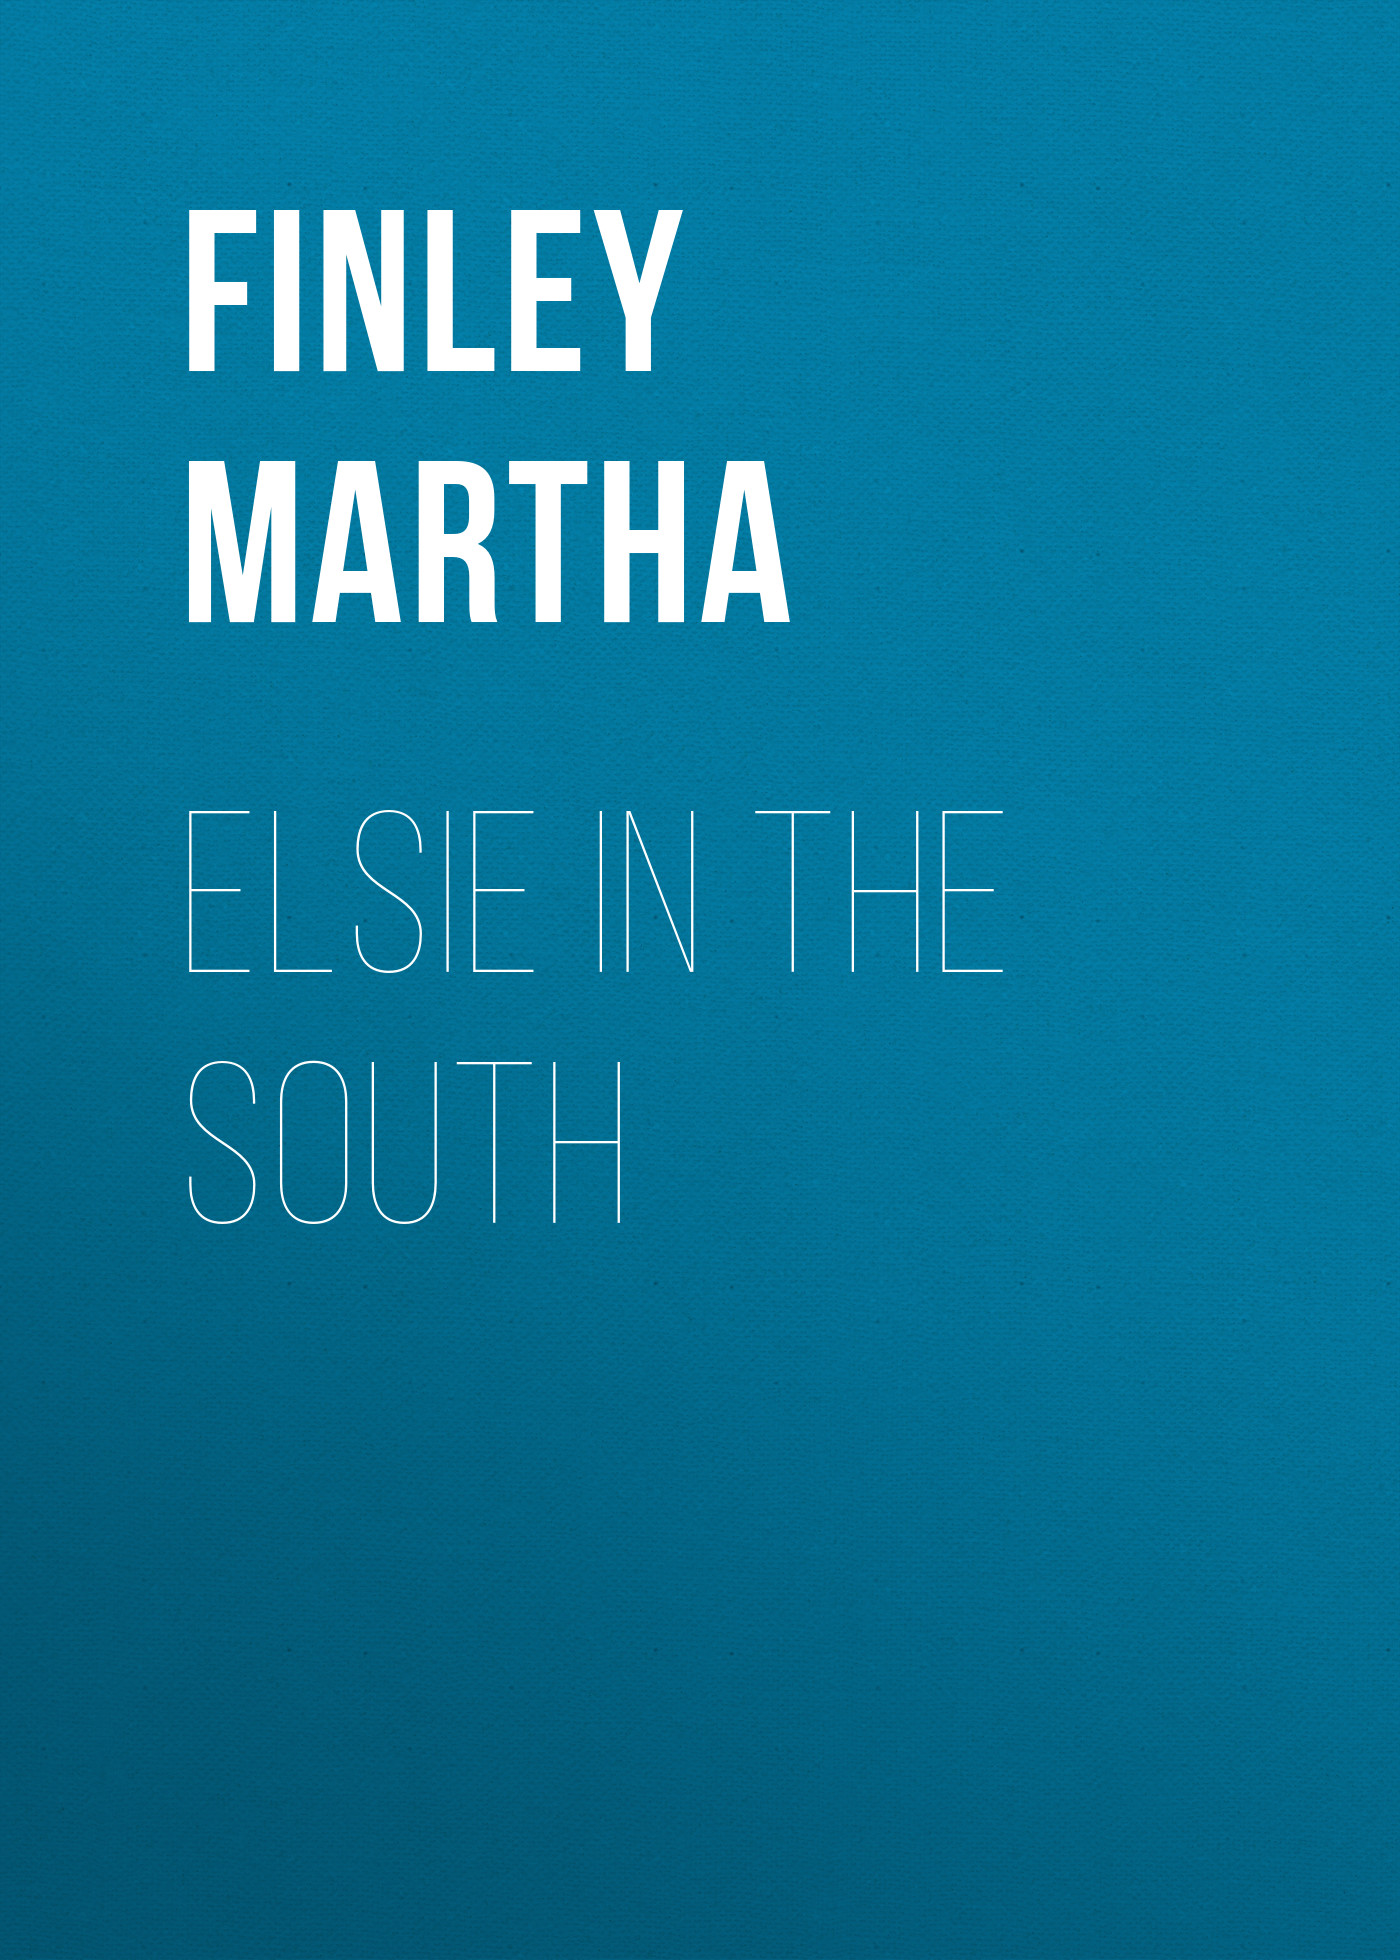 Finley Martha Elsie in the South